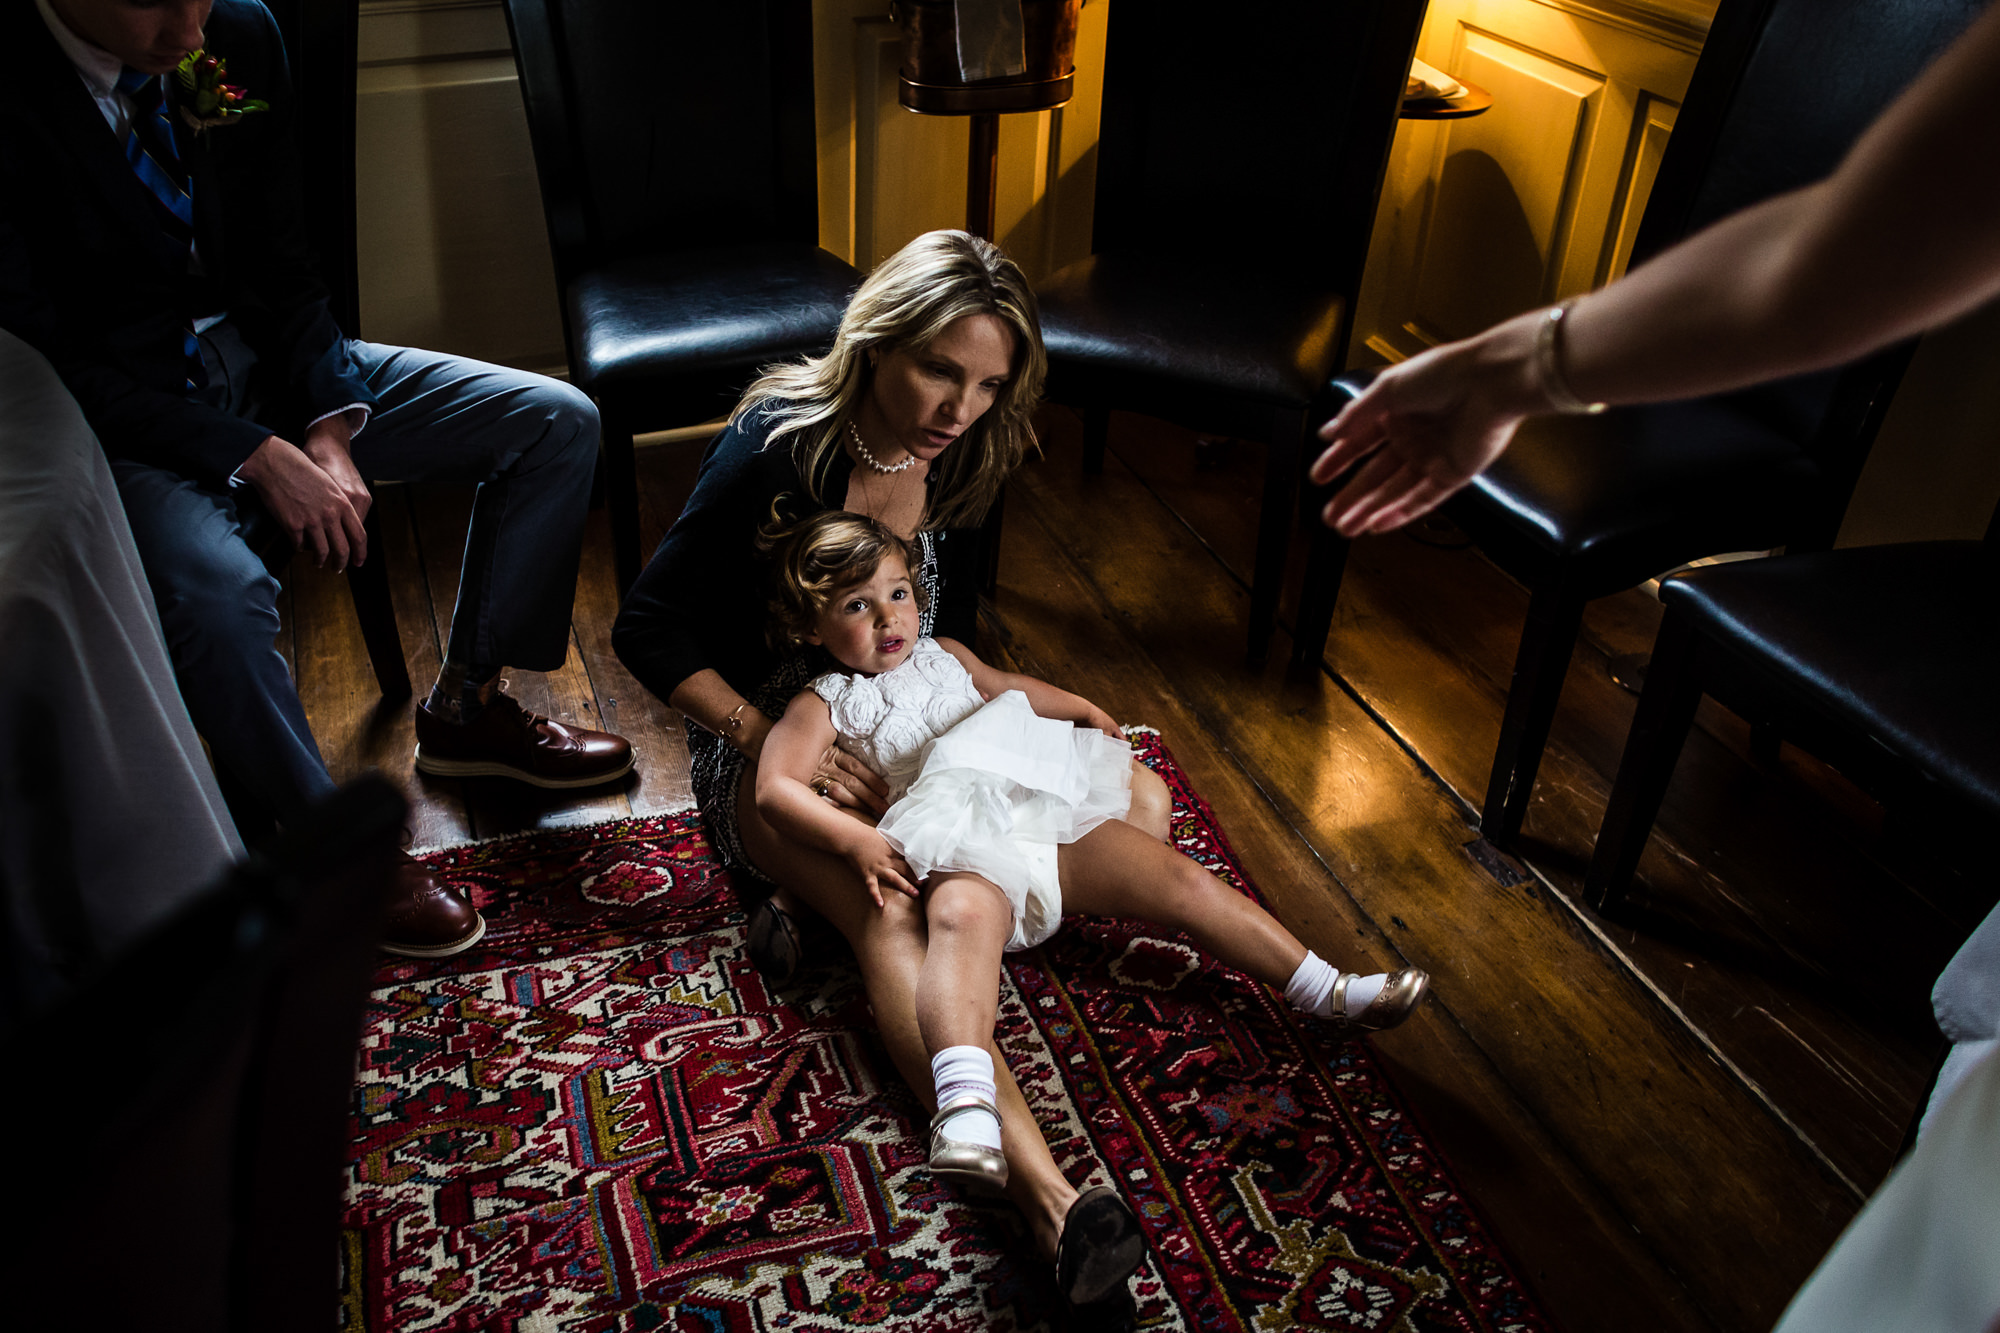 adorable-little-girl-sitting-on-moms-lap-with-hand-outstretched-worlds-best-wedding-photos-JAG-studios-connecticut-wedding-photographers